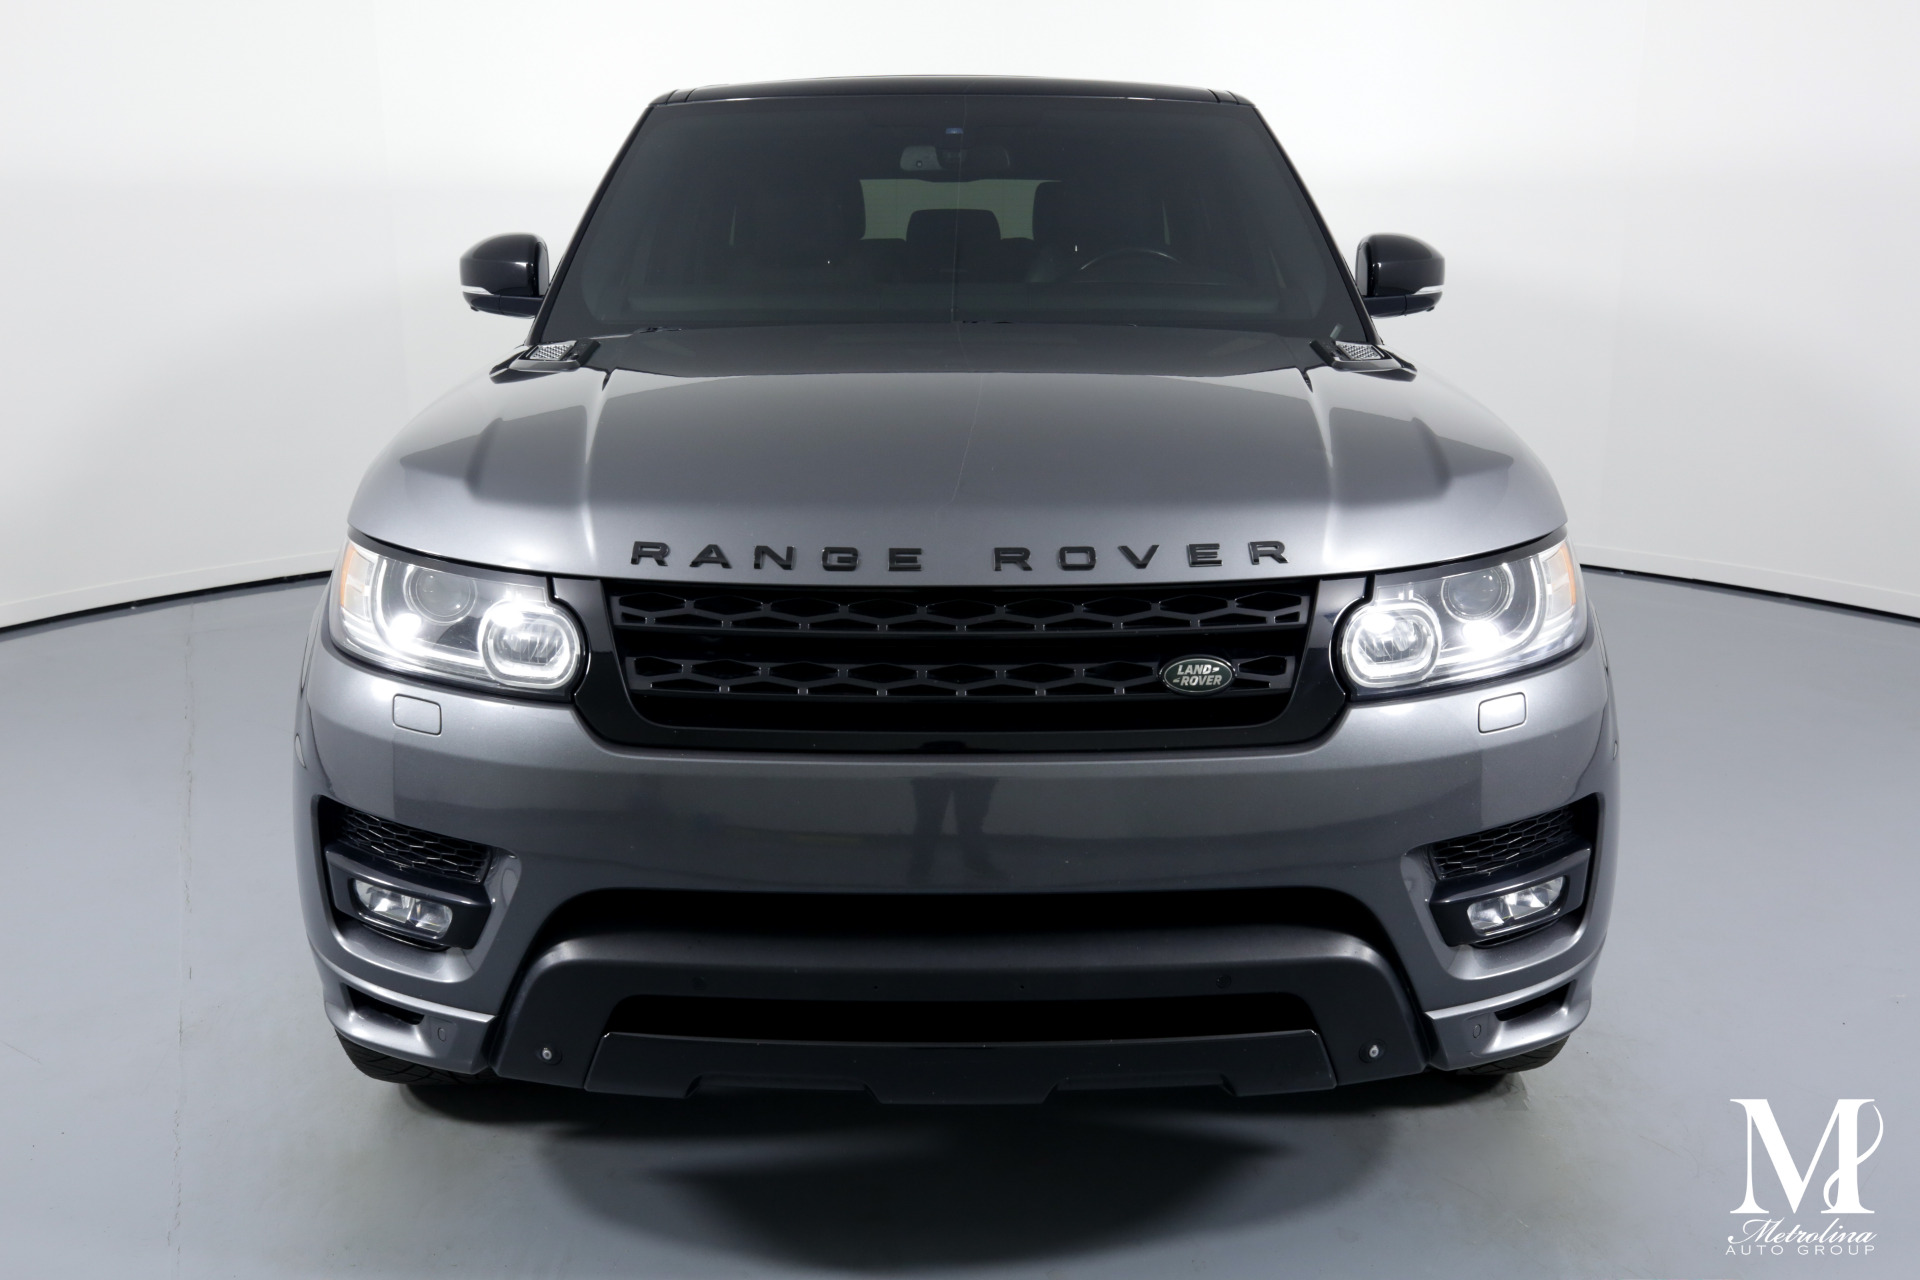 Used 2014 Land Rover Range Rover Sport Autobiography for sale Sold at Metrolina Auto Group in Charlotte NC 28217 - 3